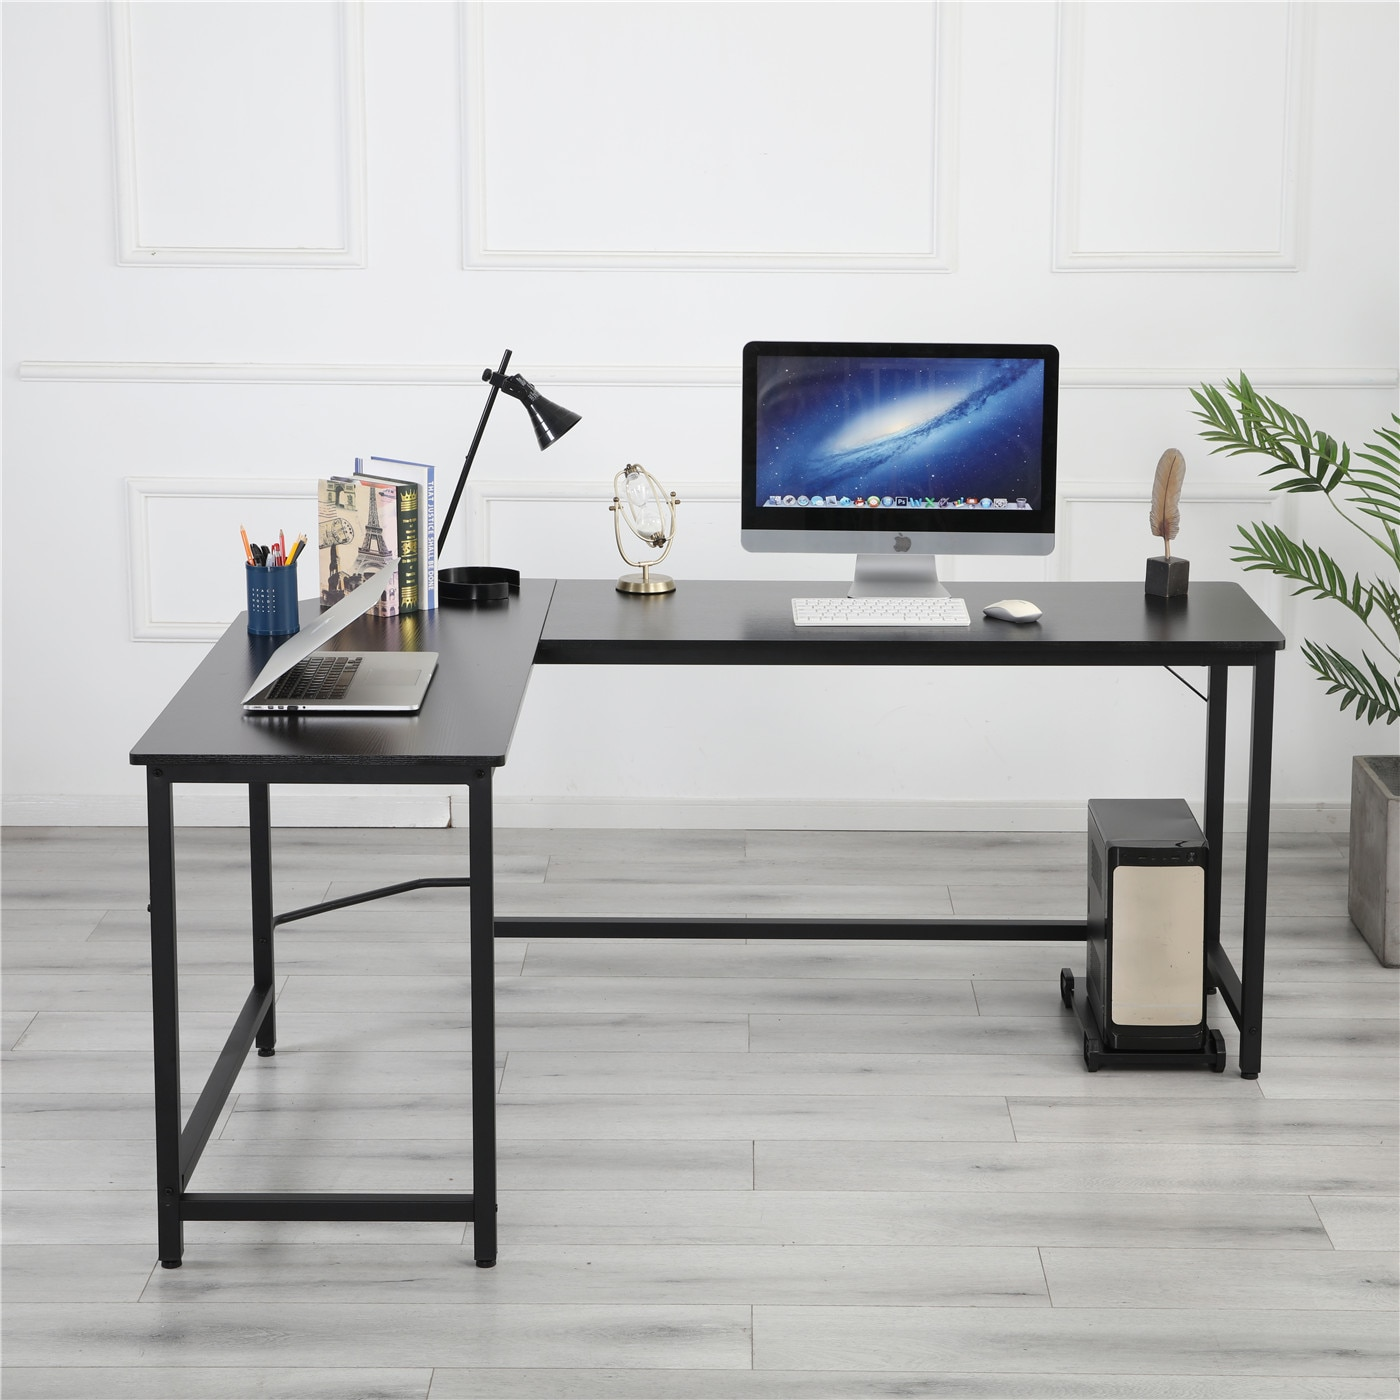 Фото - L-Shaped Desktop Computer Desk Study/Office Table Corner Table Easy to Assemble Can Be Used in home and office Pure Black[US-W] michael mandelbaum that used to be us